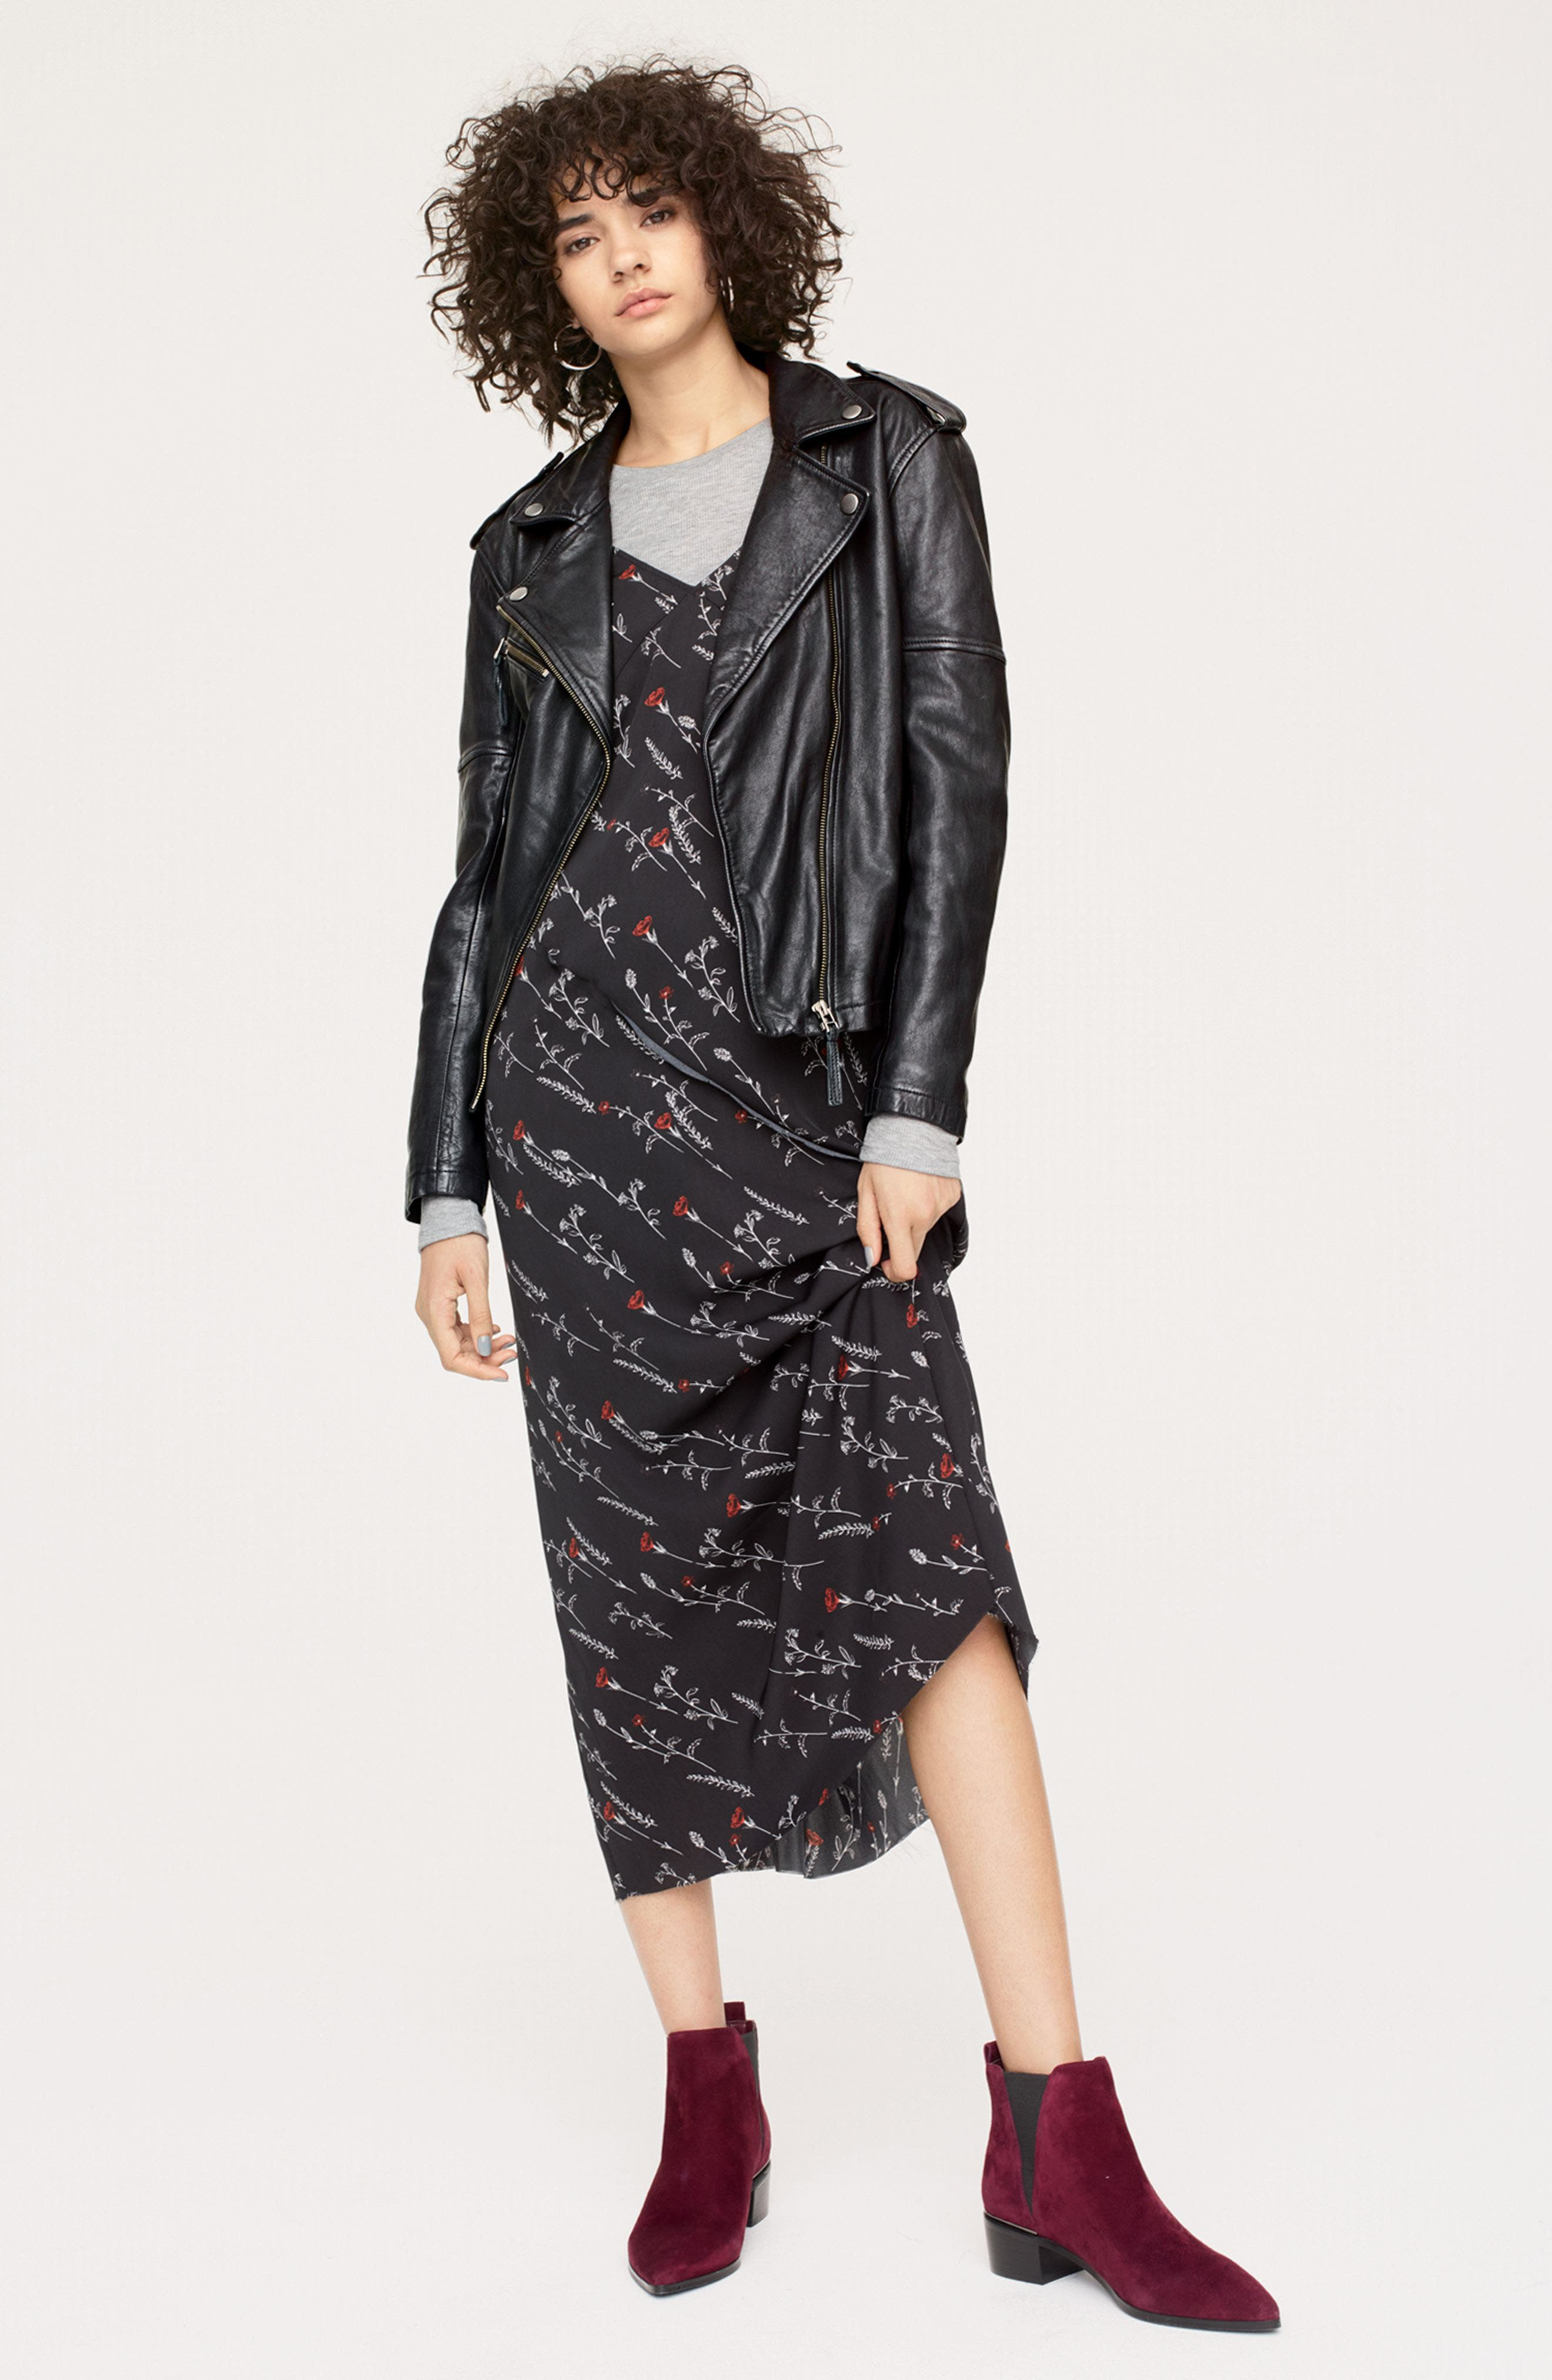 Treasure & Bond Jacket, Slipdress & Tee Outfit with Accessories